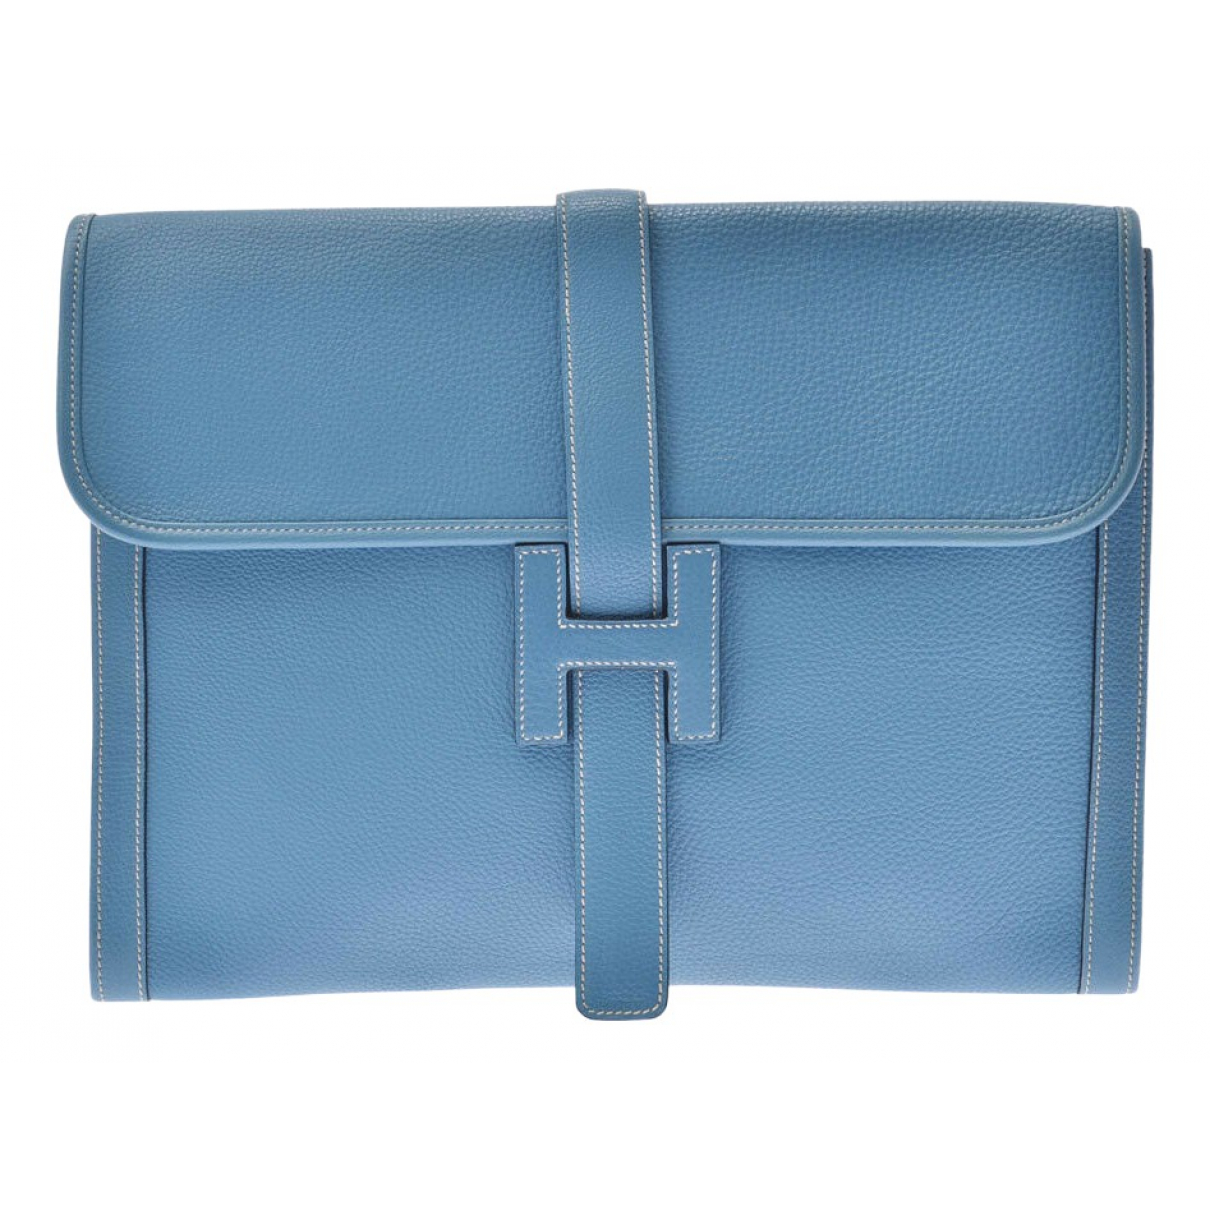 Hermès Jige Blue Leather Clutch bag for Women N